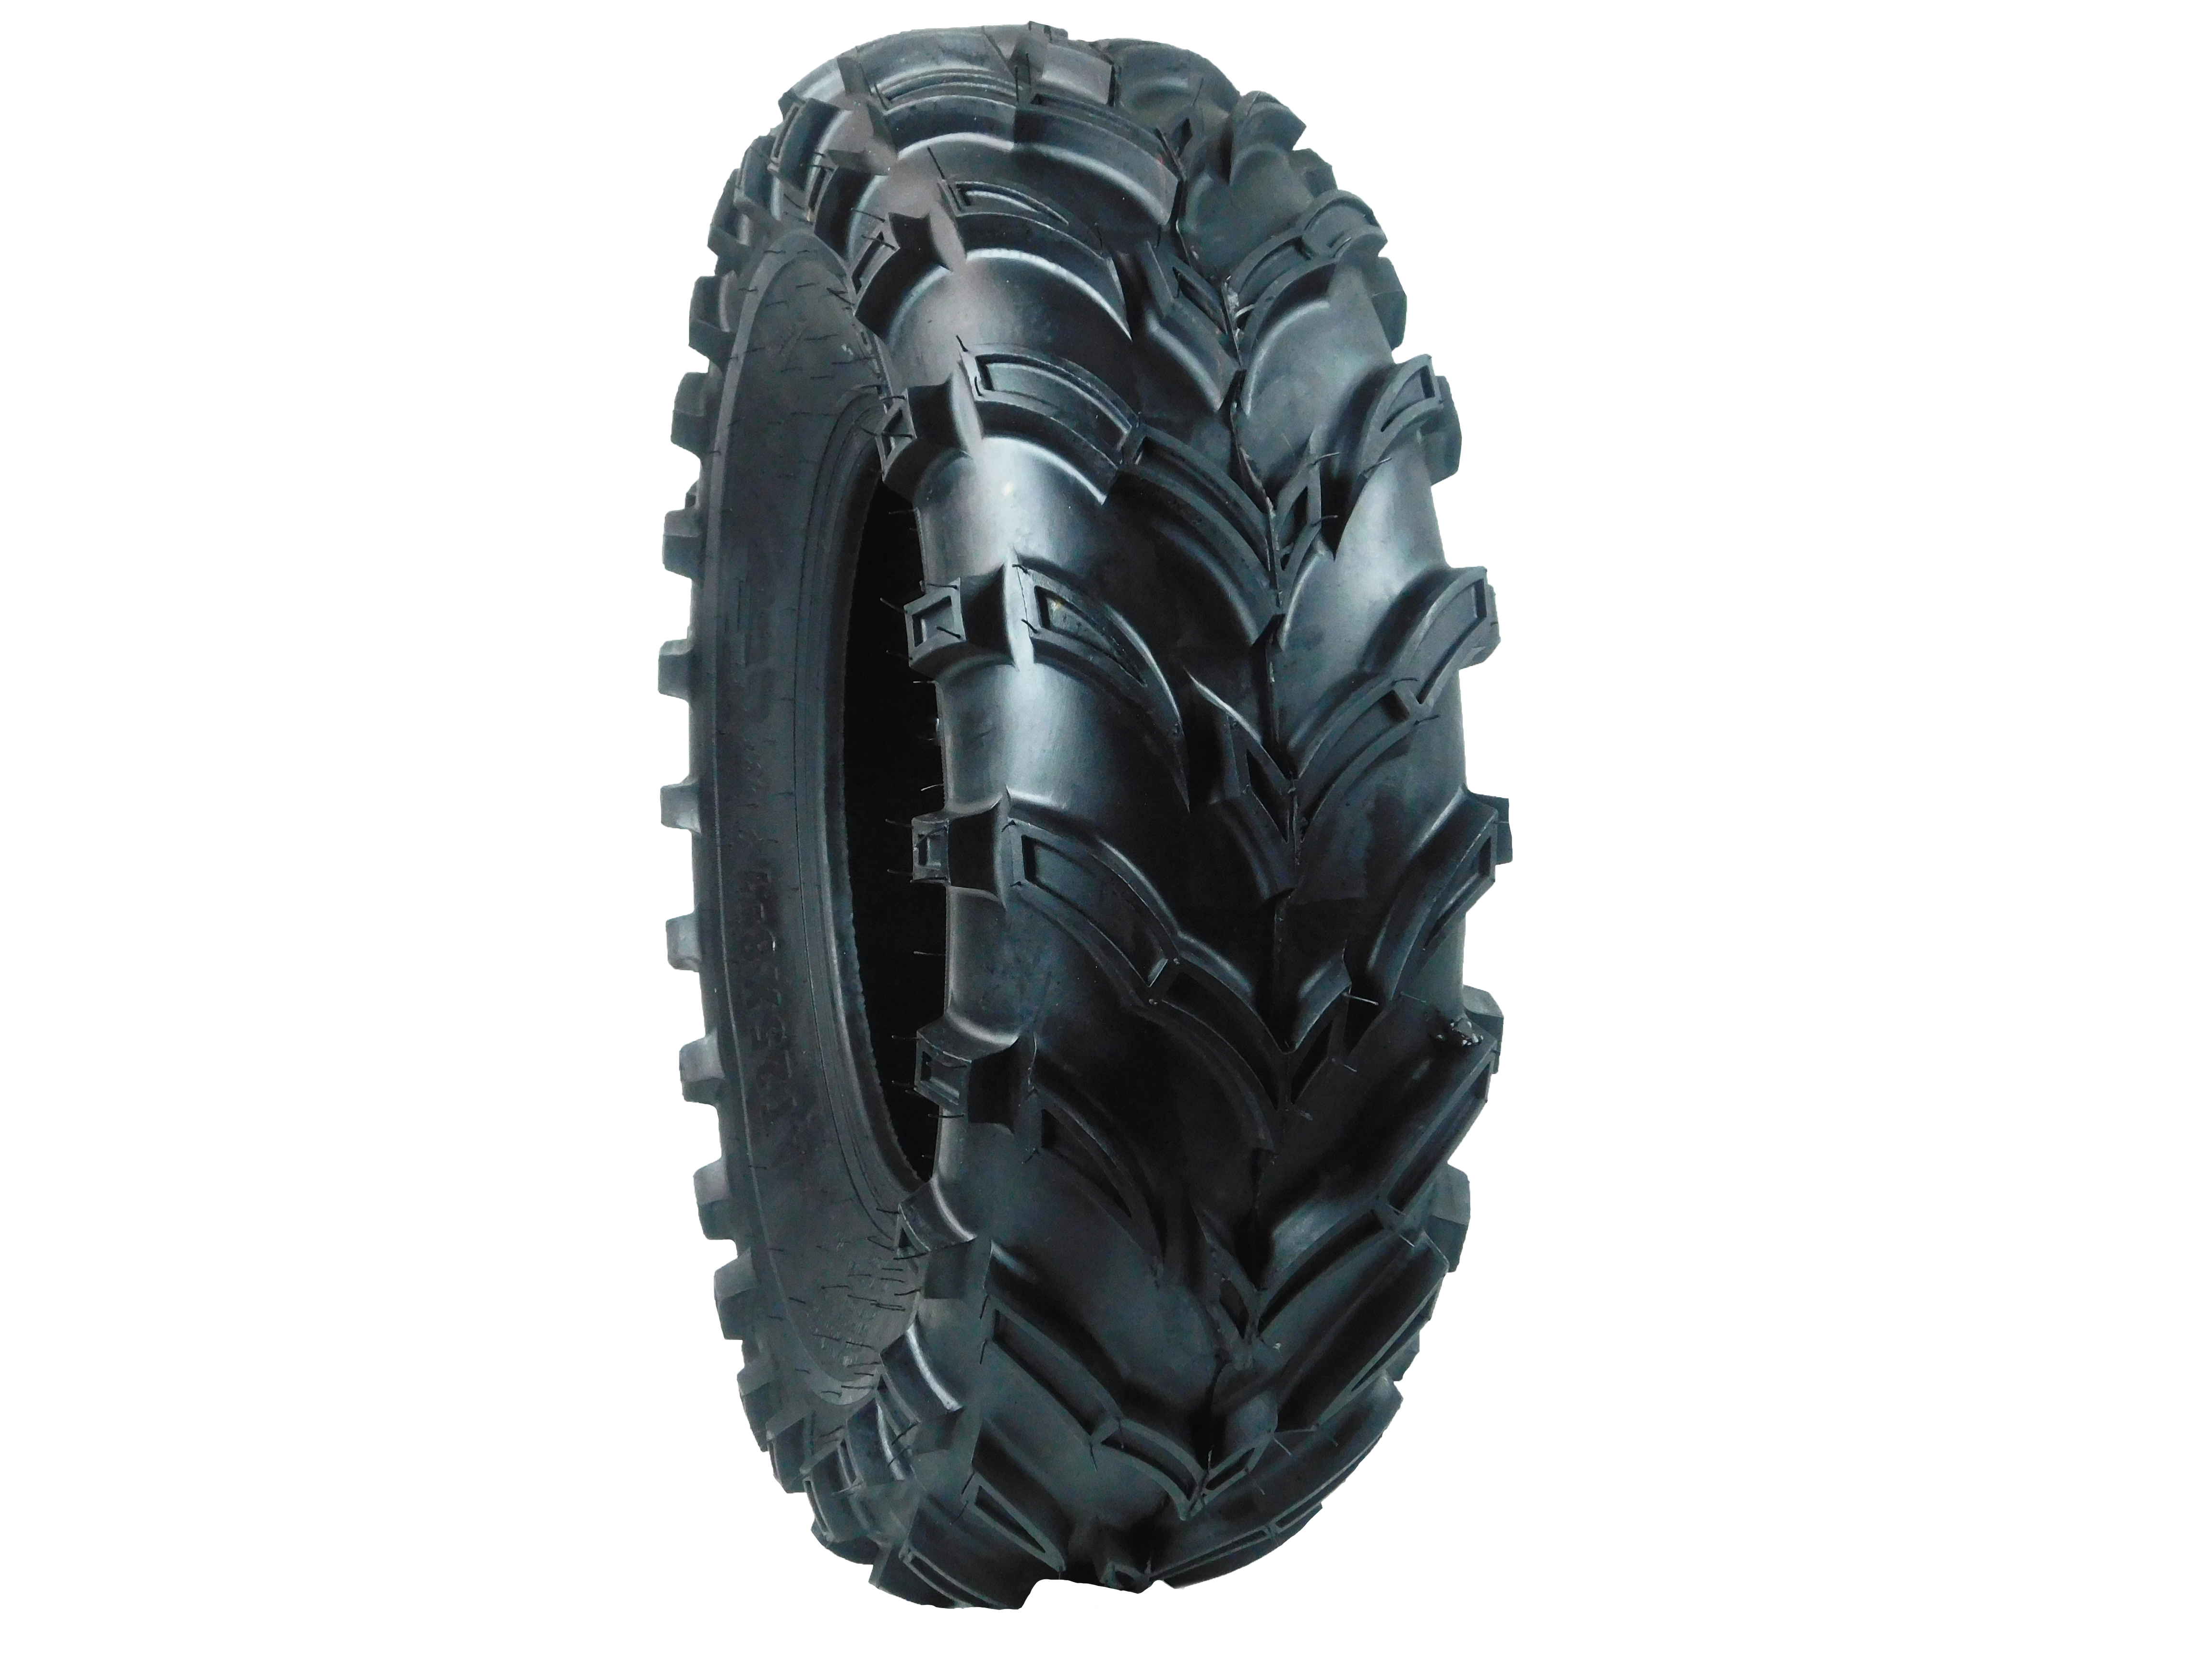 MASSFX-25x8-12-ATV-MS-Single-Tire-25-8-12-Front-6Ply-25inch-image-1